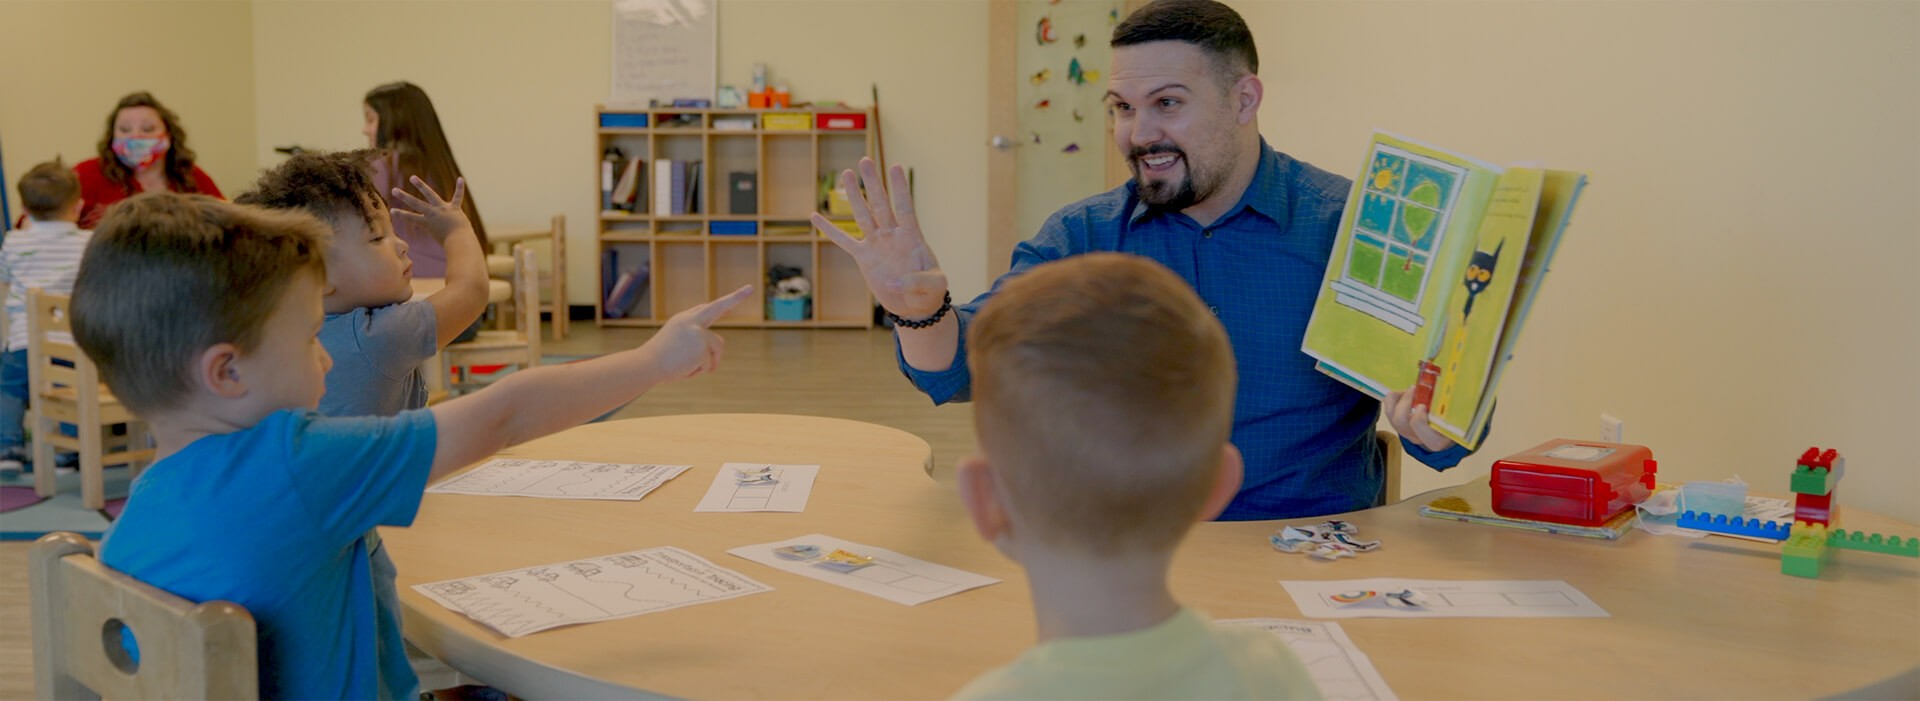 a man holds up the number 5 while holding a book while one boy is pointing at him and another is sitting